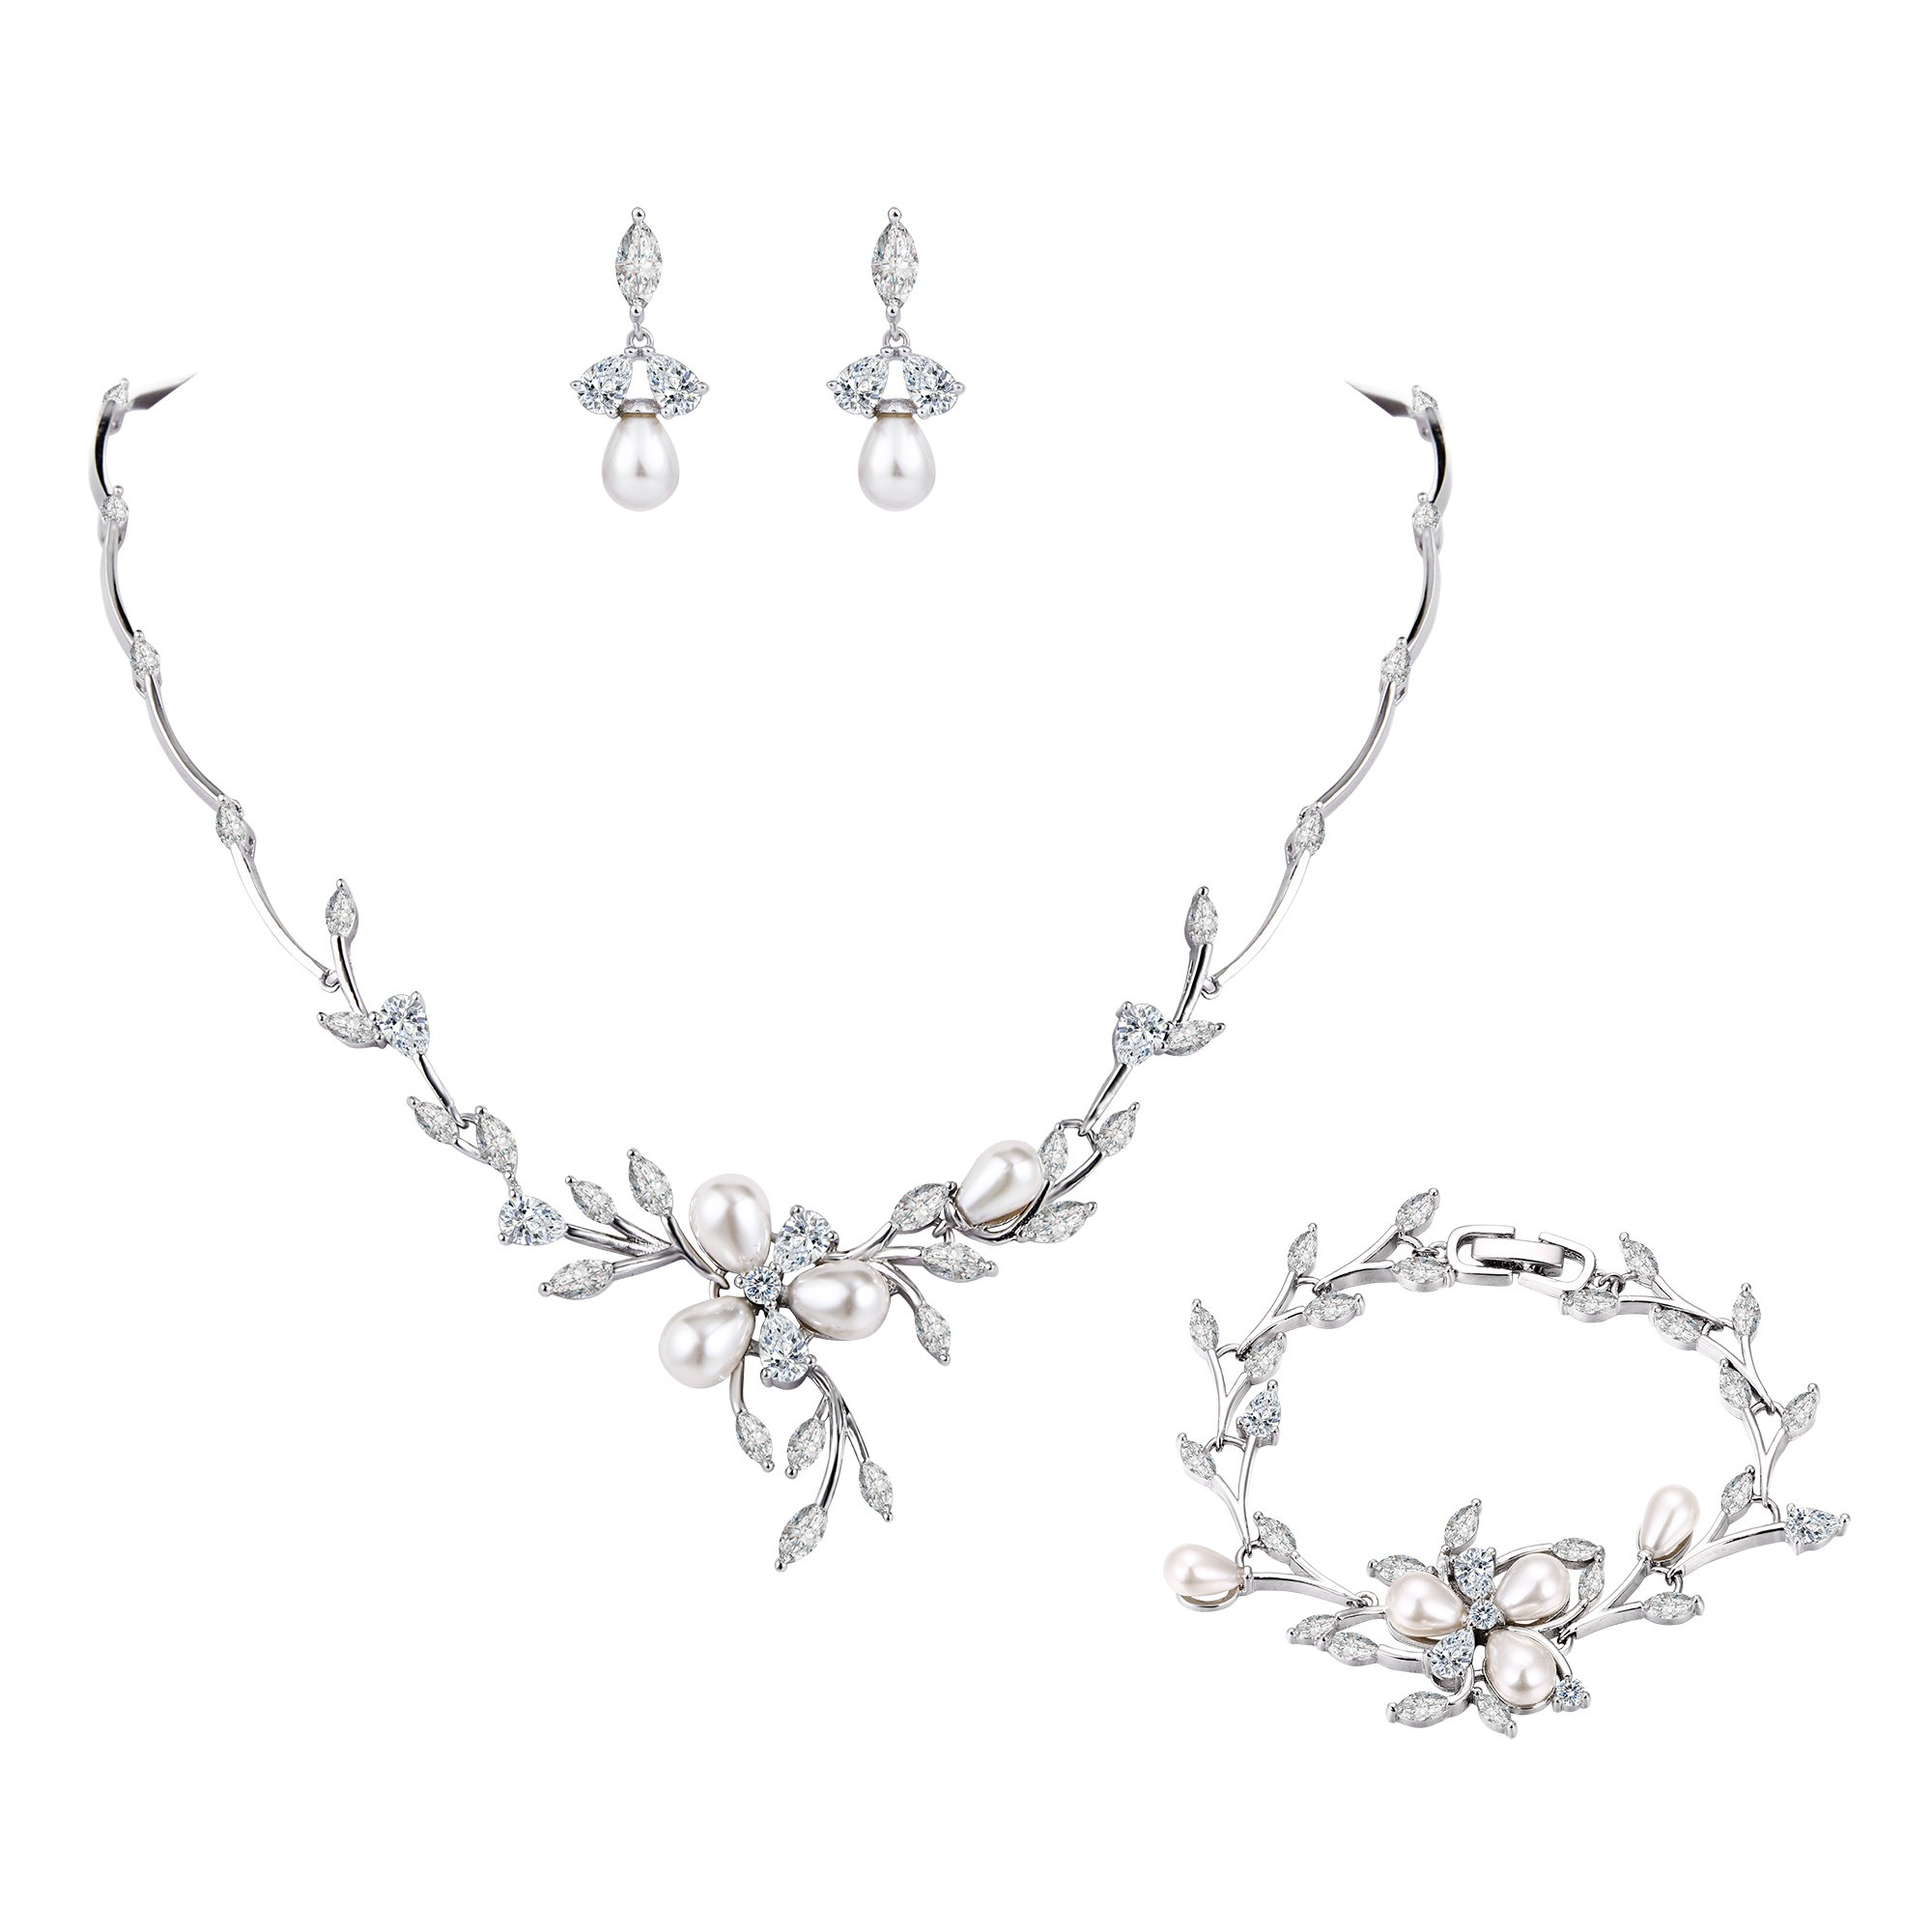 EVER FAITH Clear Marquise CZ Simulated Pearl Bride Flower Leaf Filigree Necklace Earrings Bracelet Set Silver-Tone by EVER FAITH